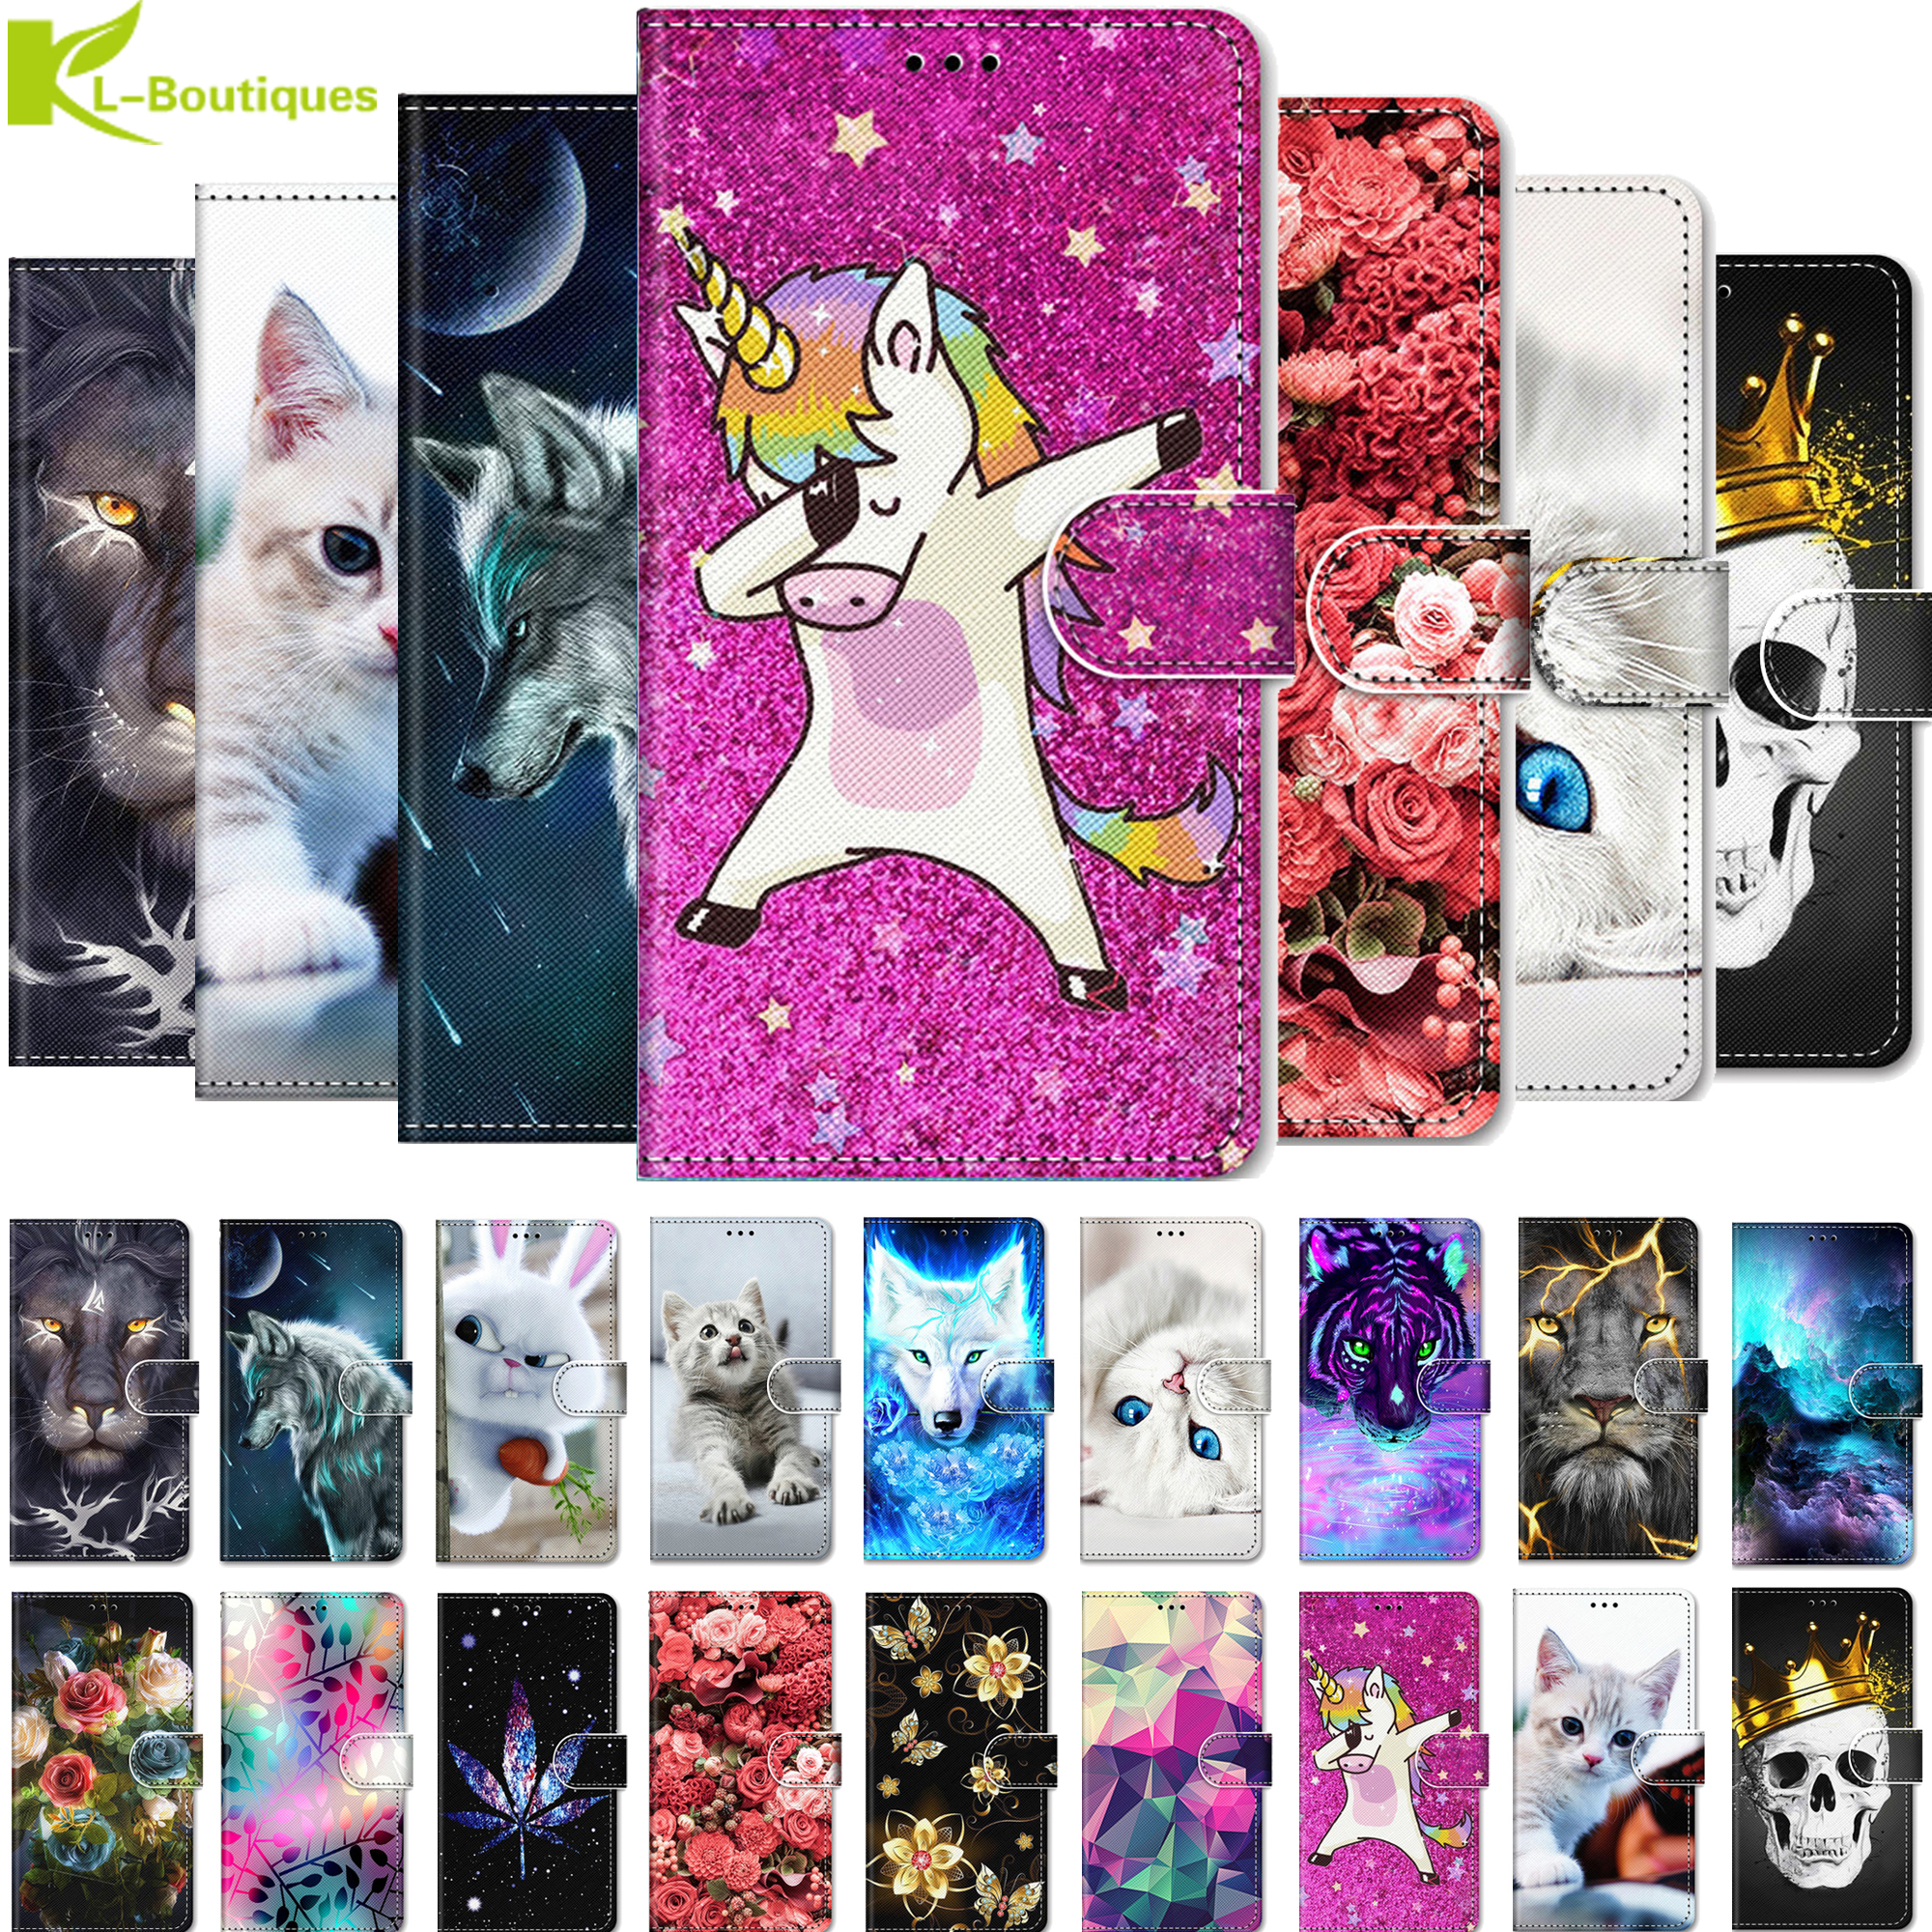 y5 2019 <font><b>Case</b></font> On <font><b>for</b></font> <font><b>Huawei</b></font> Y5 Y 5 2019 AMN-LX1 LX2 LX3 LX9 Coque funda <font><b>huawei</b></font> y52019 <font><b>Honor</b></font> <font><b>8S</b></font> 8 S honor8s KSE-LX9 Leather Coque image